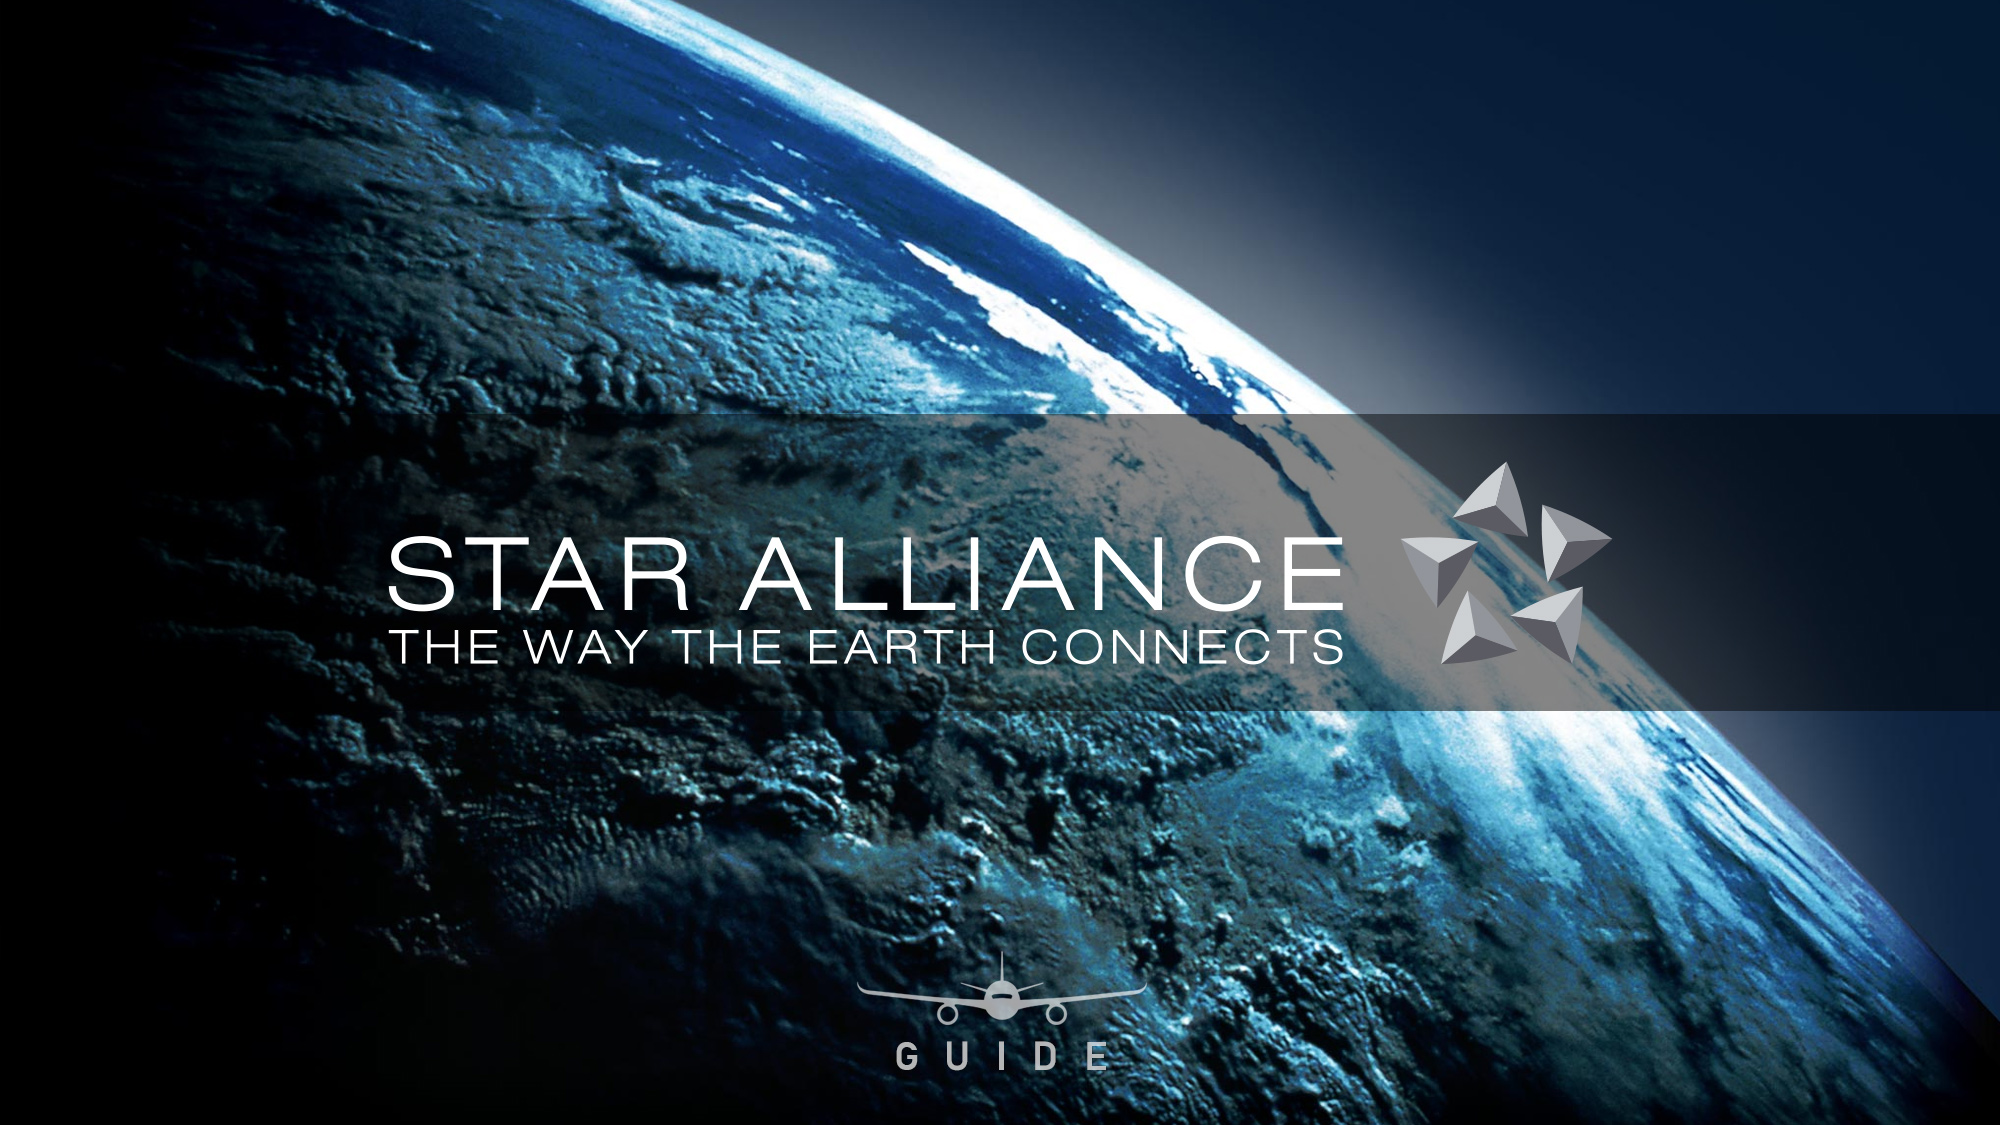 Star Alliance featured image